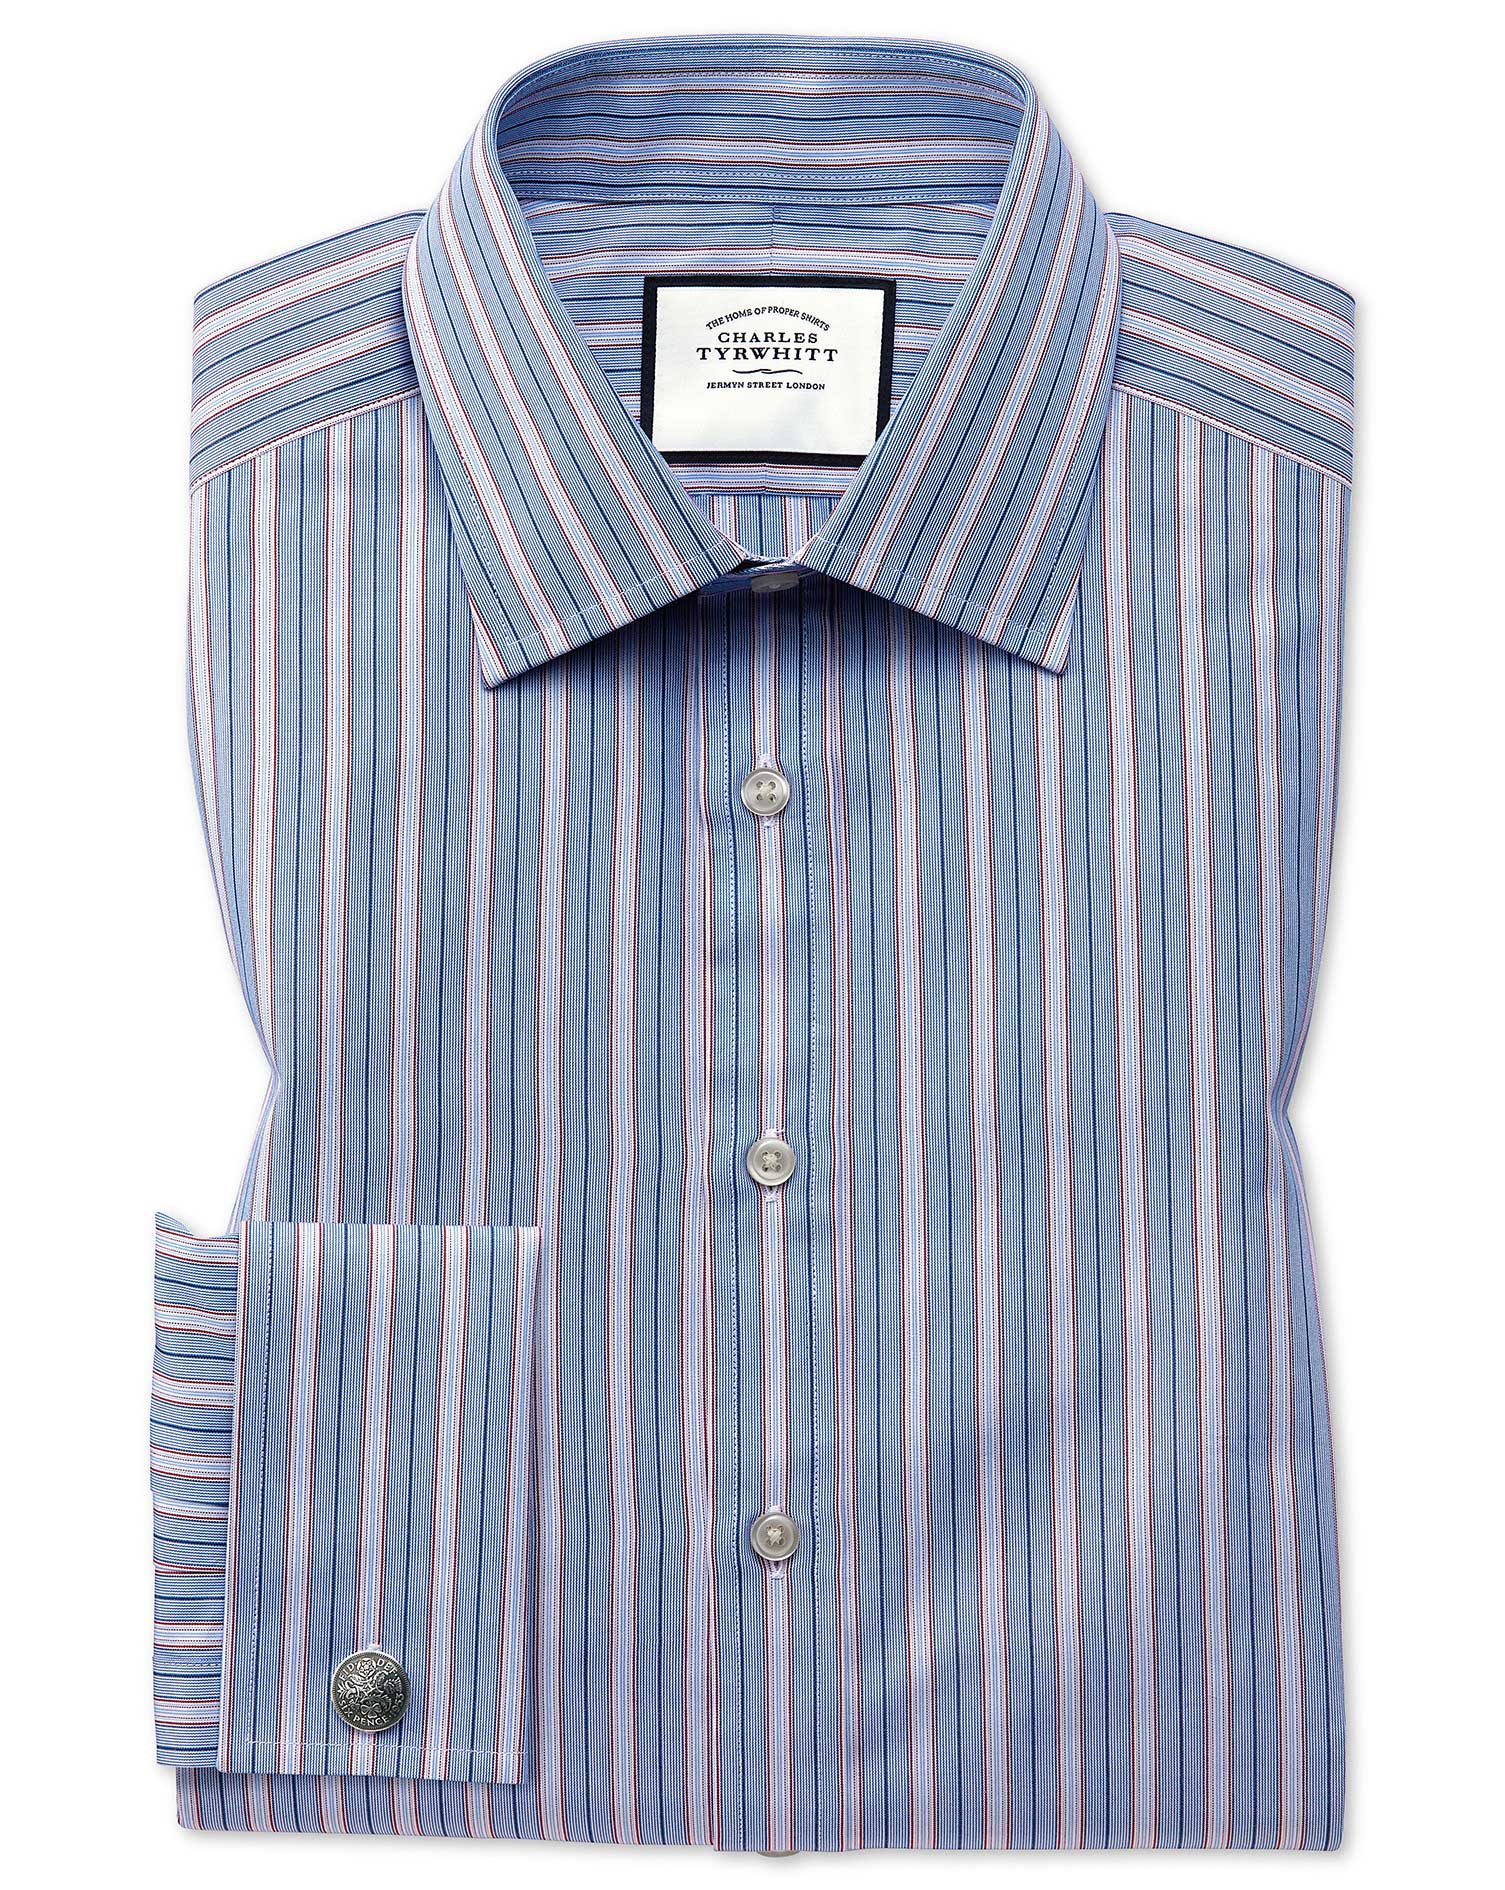 Classic Fit Red Multi Stripe Egyptian Cotton Formal Shirt Double Cuff Size 19/37 by Charles Tyrwhitt